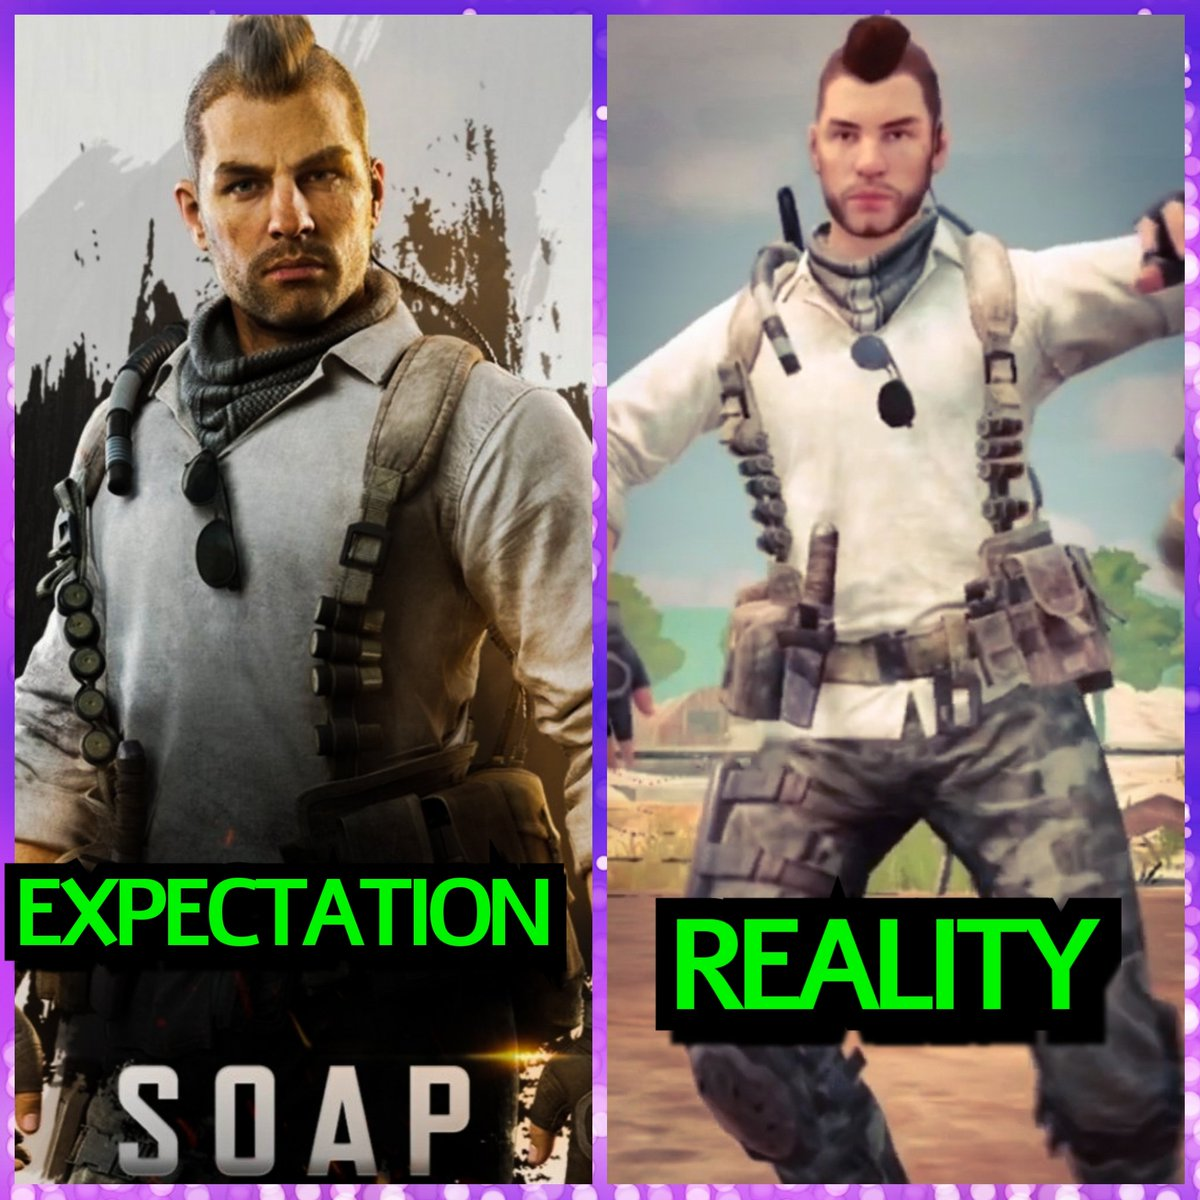 Call Of Duty Mobile On Twitter What We Expect But What We